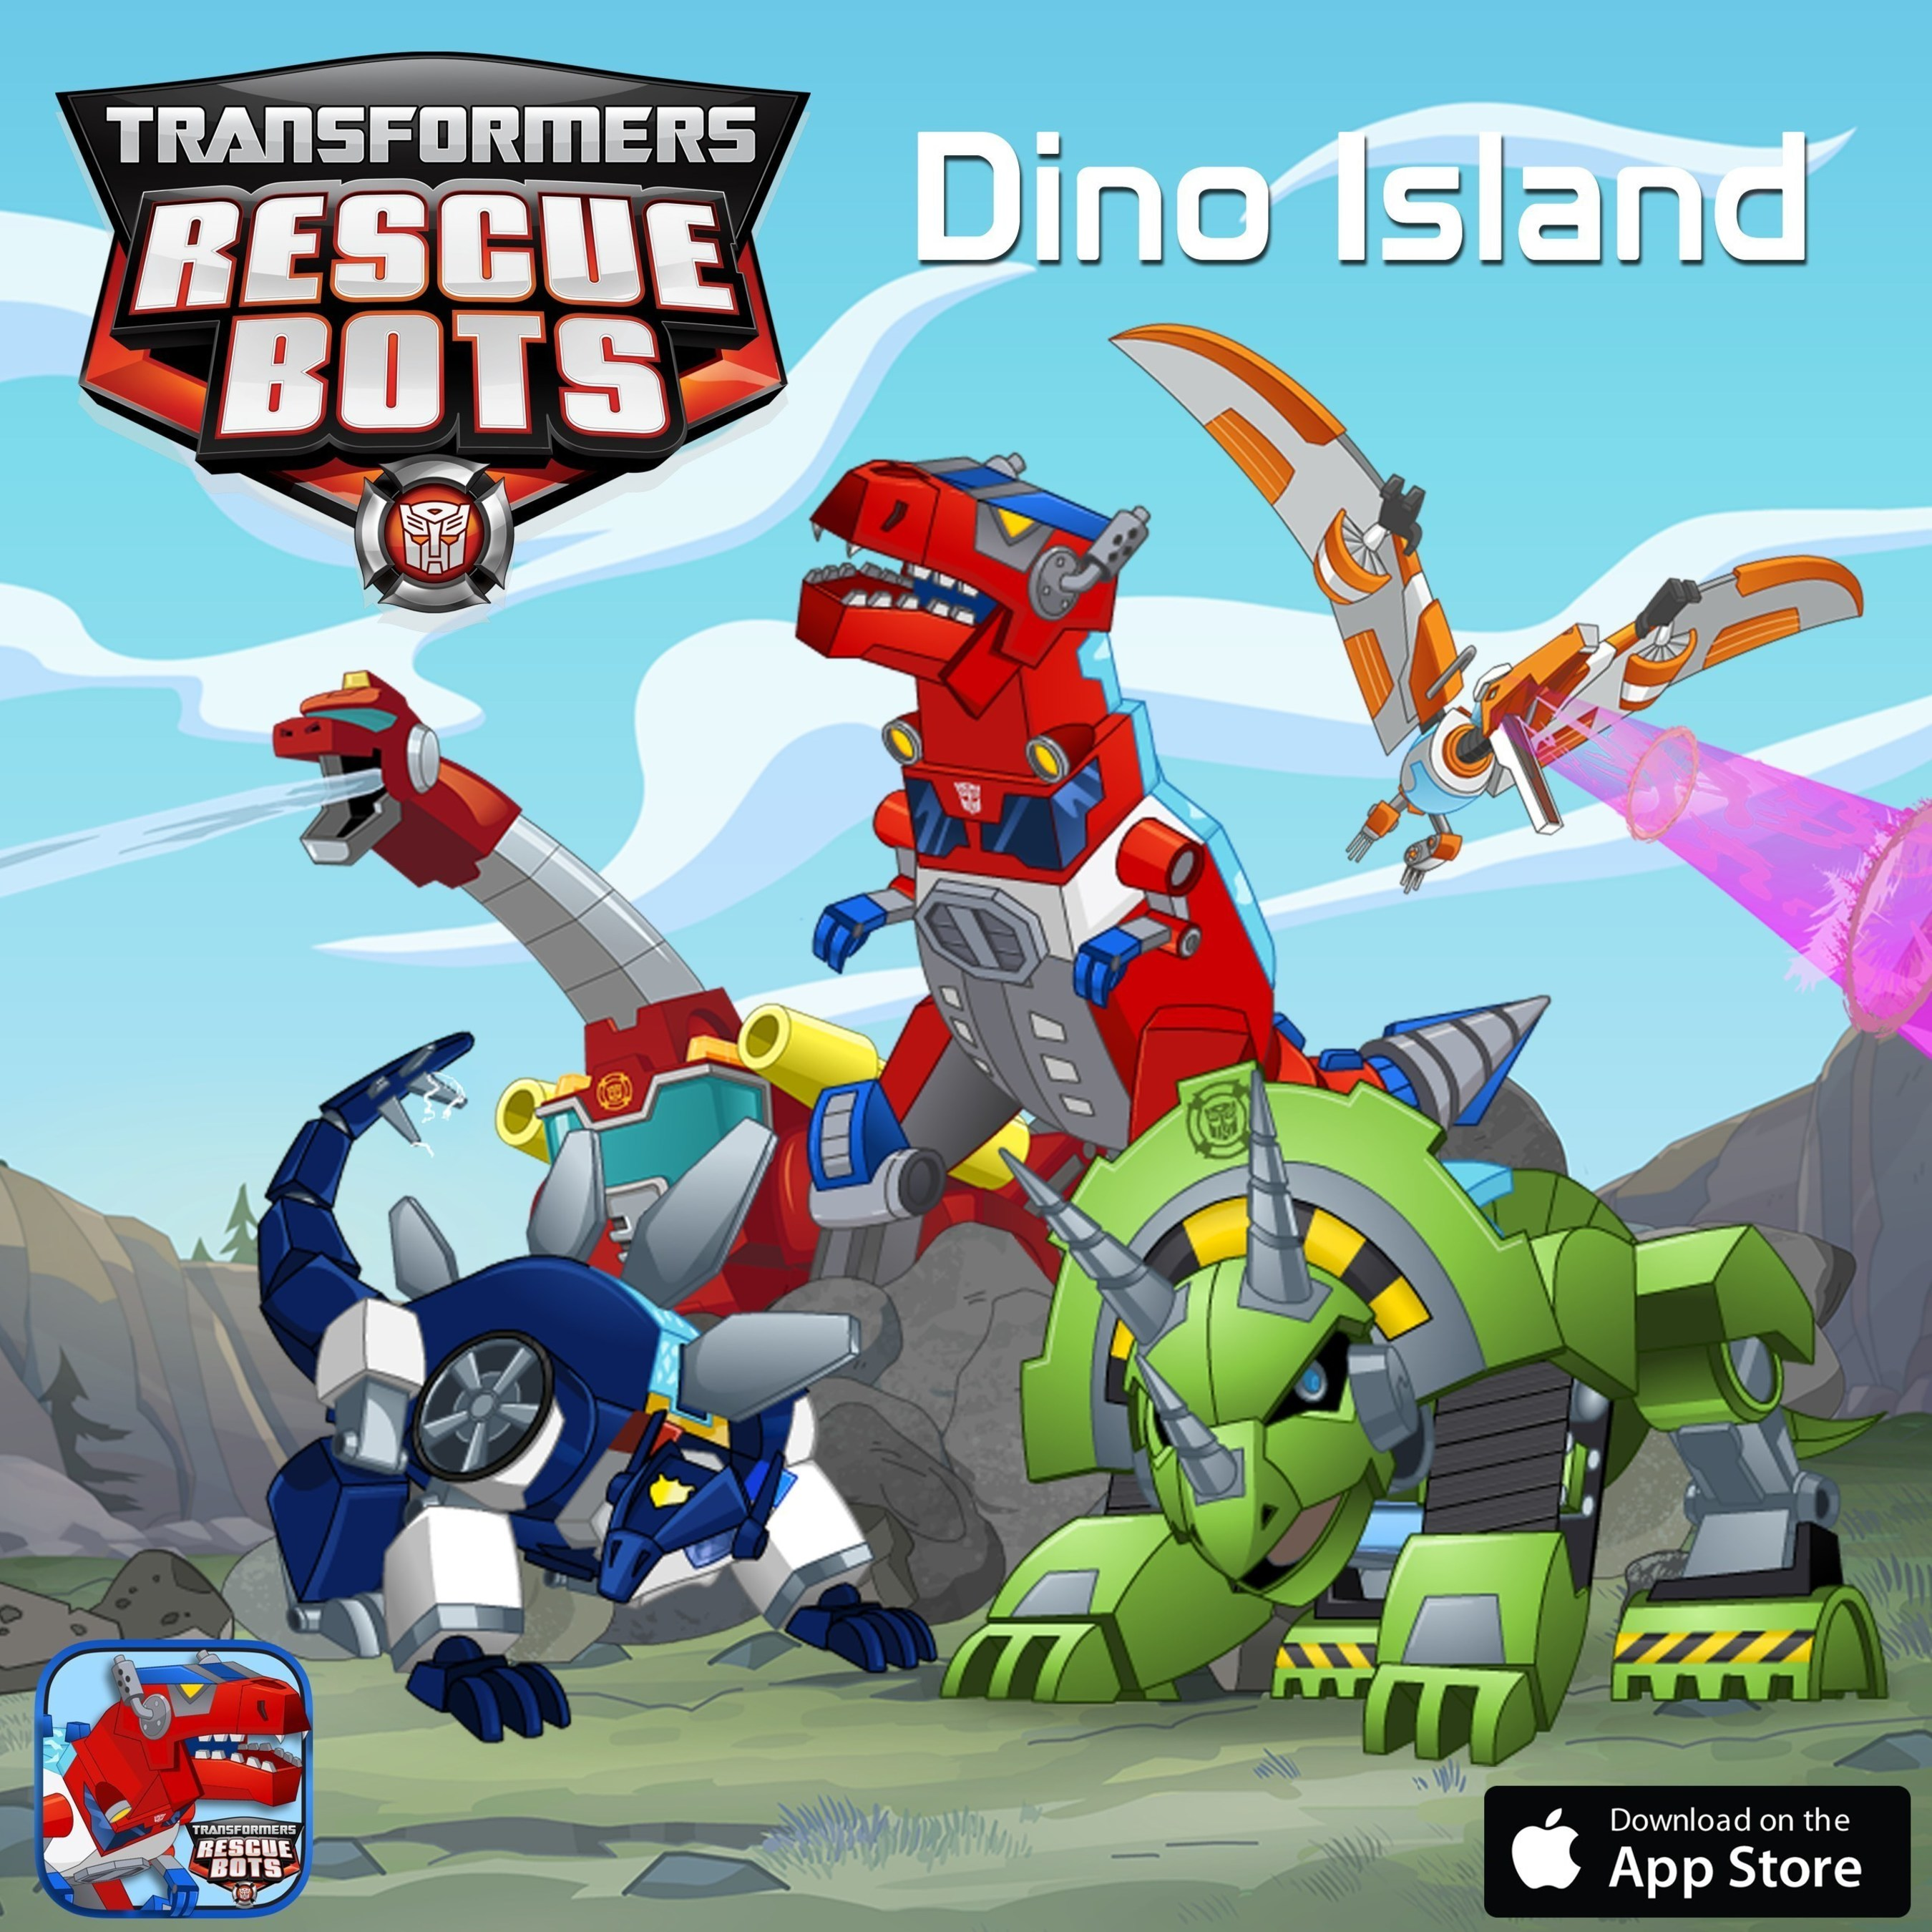 TRANSFORMERS RESCUE BOTS Roar to the Rescue in Hasbro and PlayDate Digital's New 'DINO ISLAND'